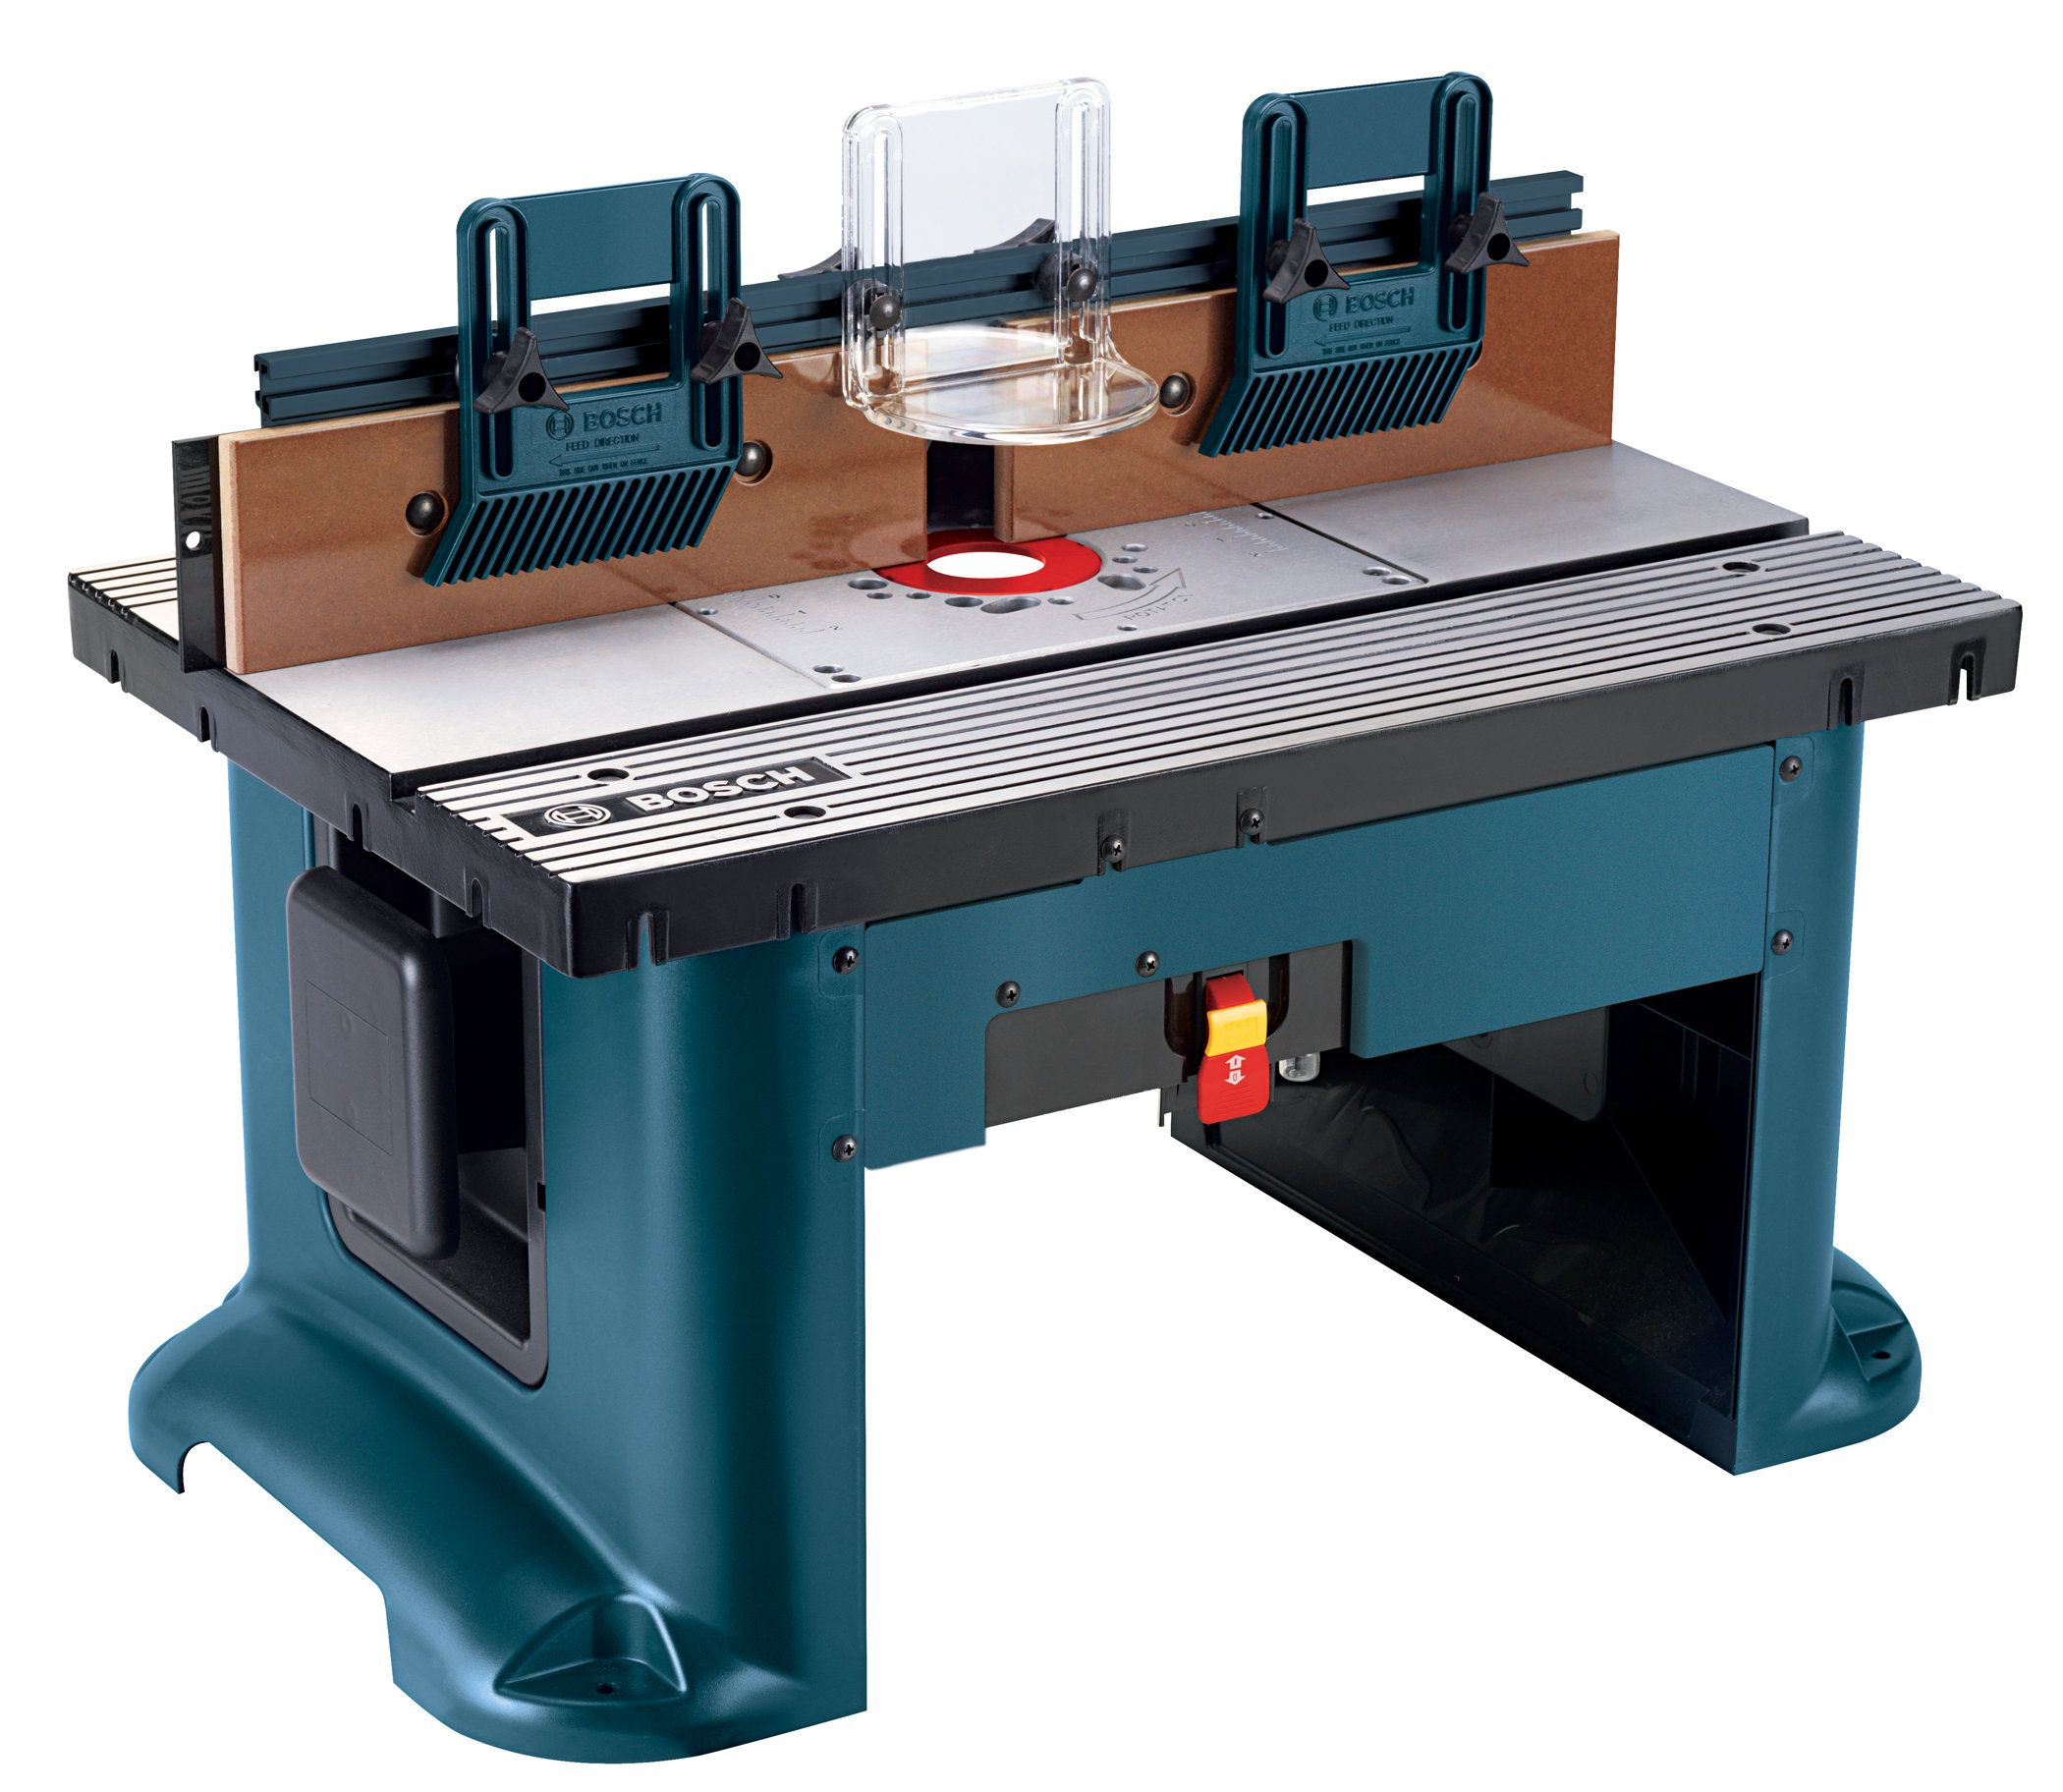 Save up to 62 off of bosch benchtop router table at amazon save up to 62 off of bosch benchtop router table at amazon greentooth Choice Image